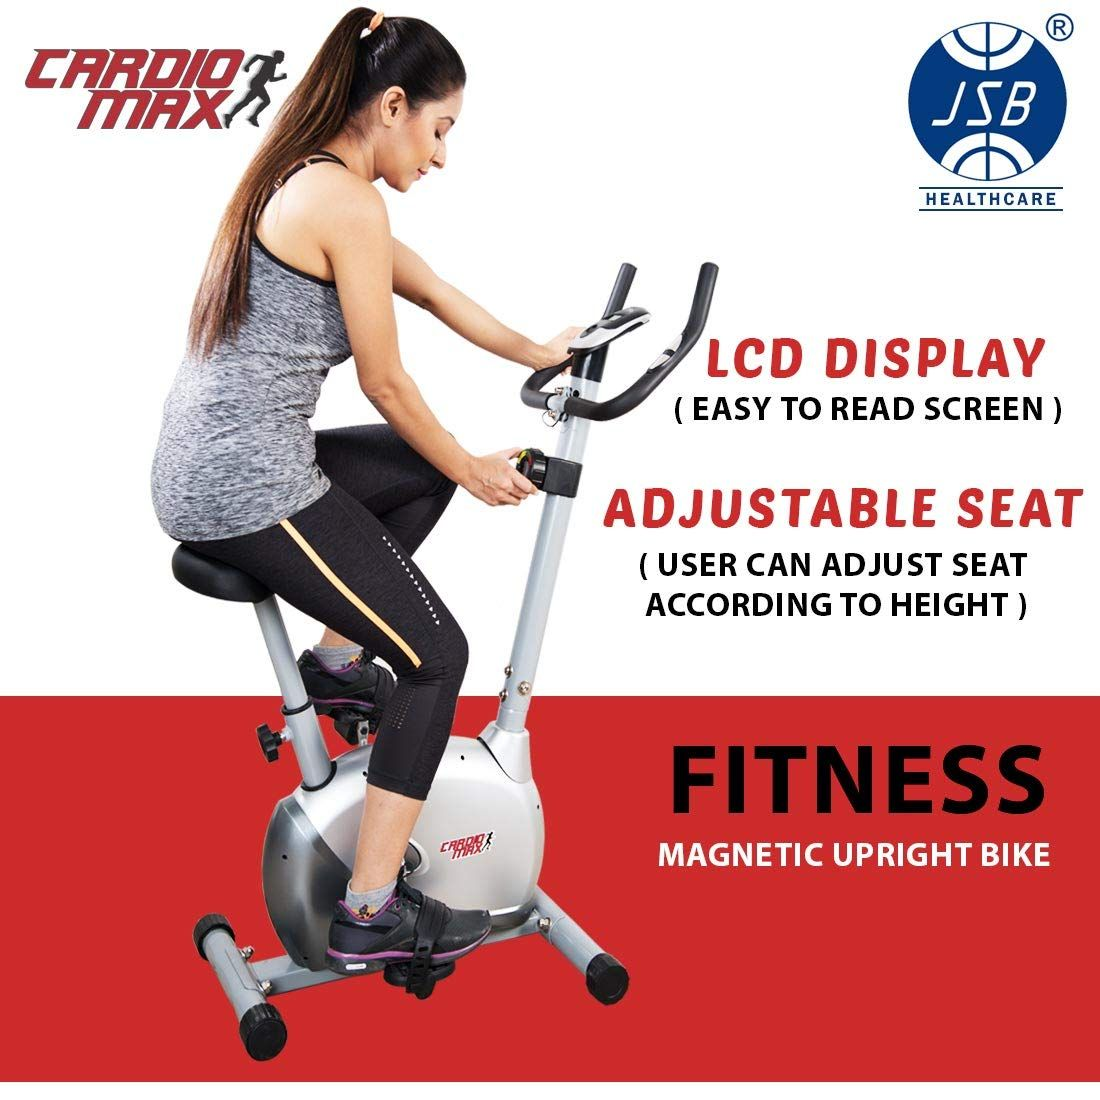 Valentineoffer Cardio Amazonsale Airbike Spinningbike Exercisecycle Fitindia Stepper Fitness Energiefitness F In 2020 Biking Workout Cycling Workout Fitness